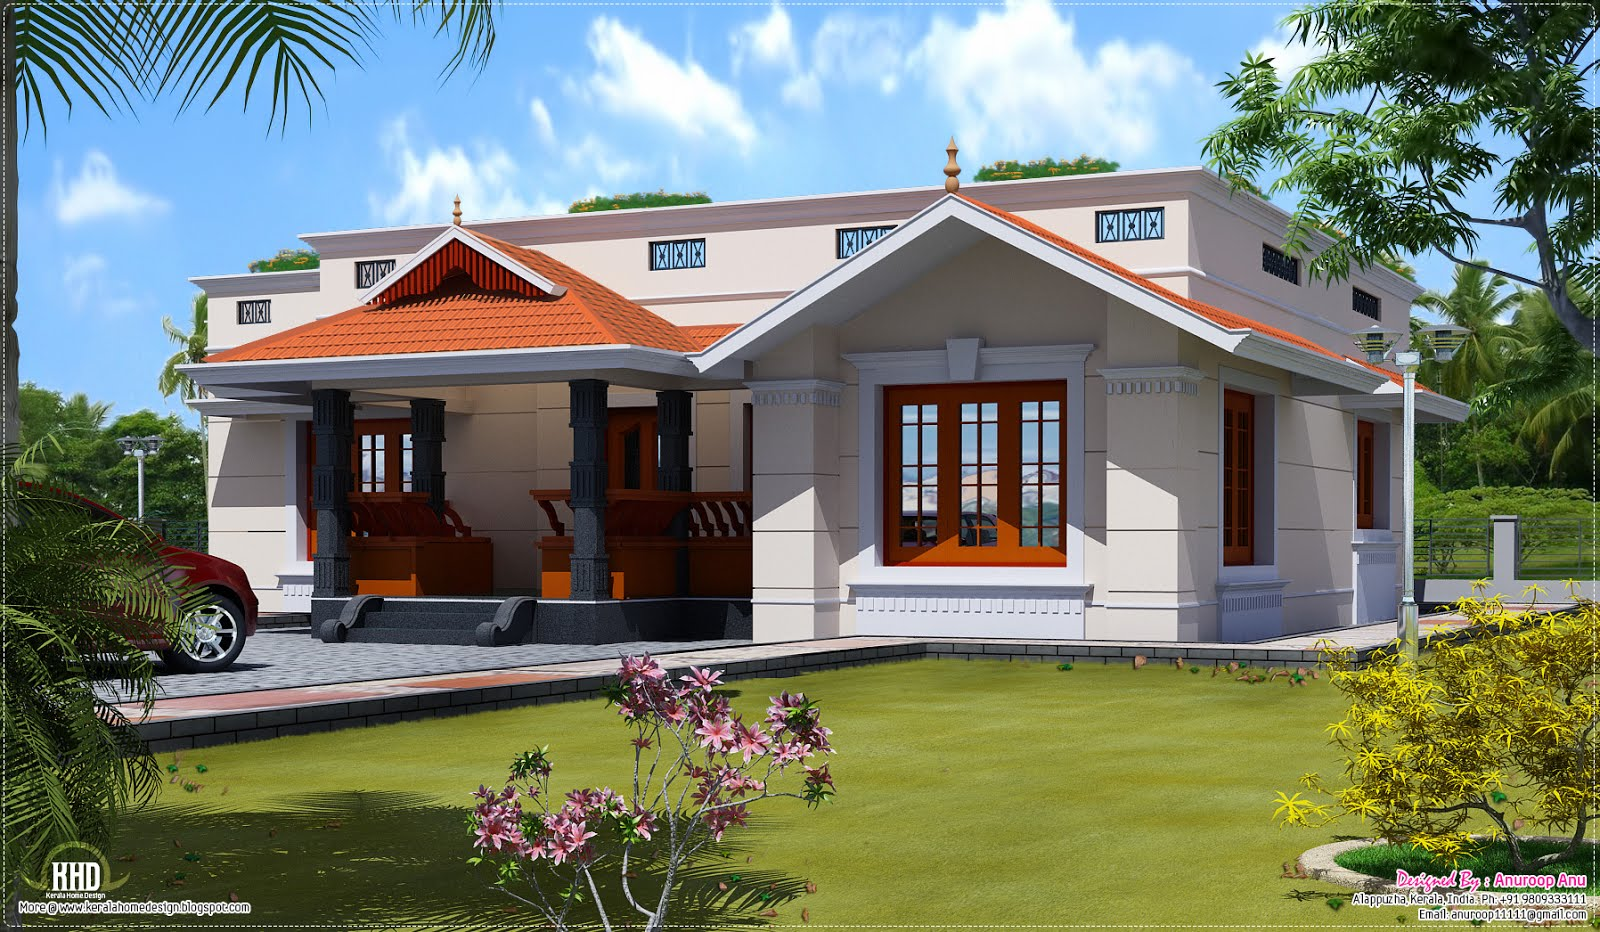 Top One Floor House Designs 1600 x 932 · 343 kB · jpeg